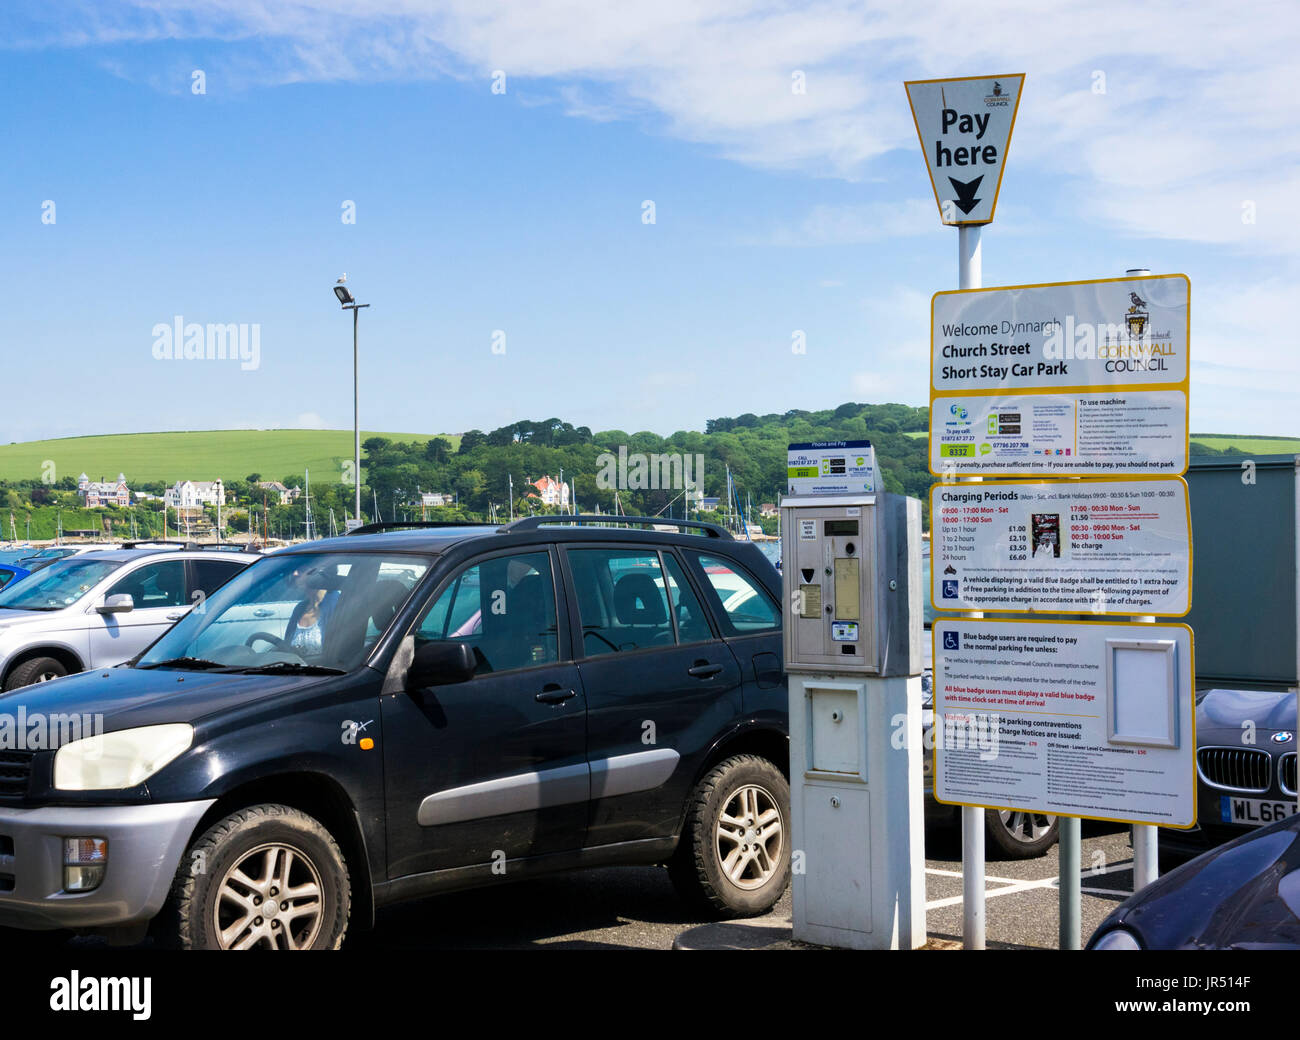 Short stay car park full of cars in summer, with pay here machine and charges, England, UK - Stock Image